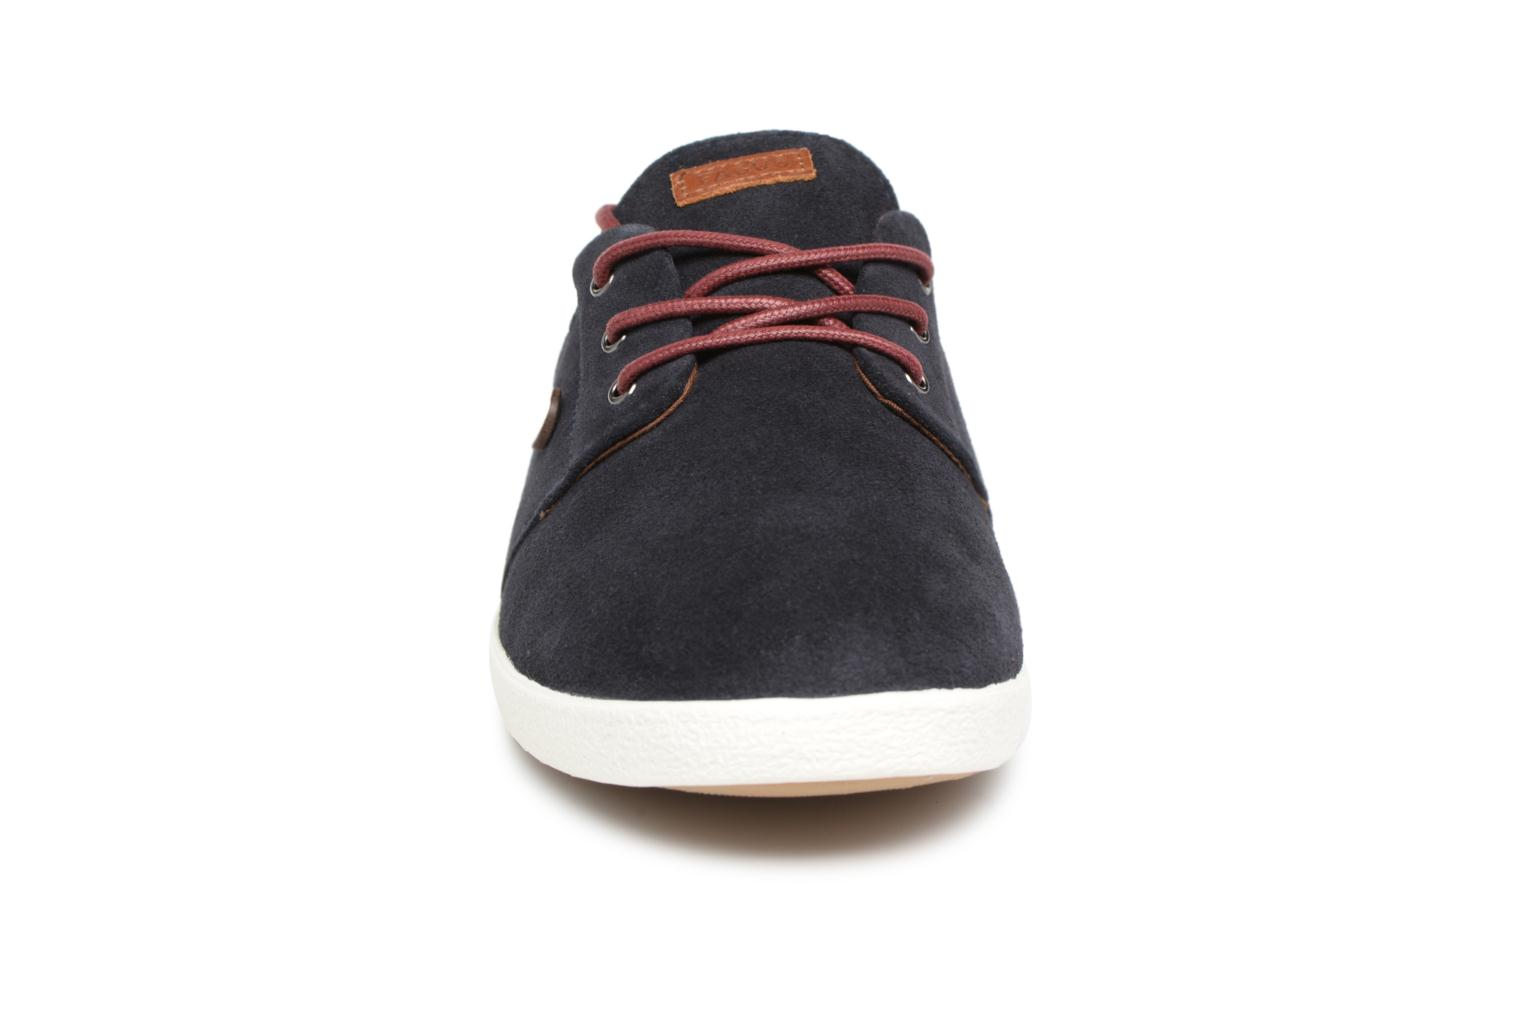 Navy Cypress Suede Suede Faguo Cypress 2 Faguo WIeH9EY2Db